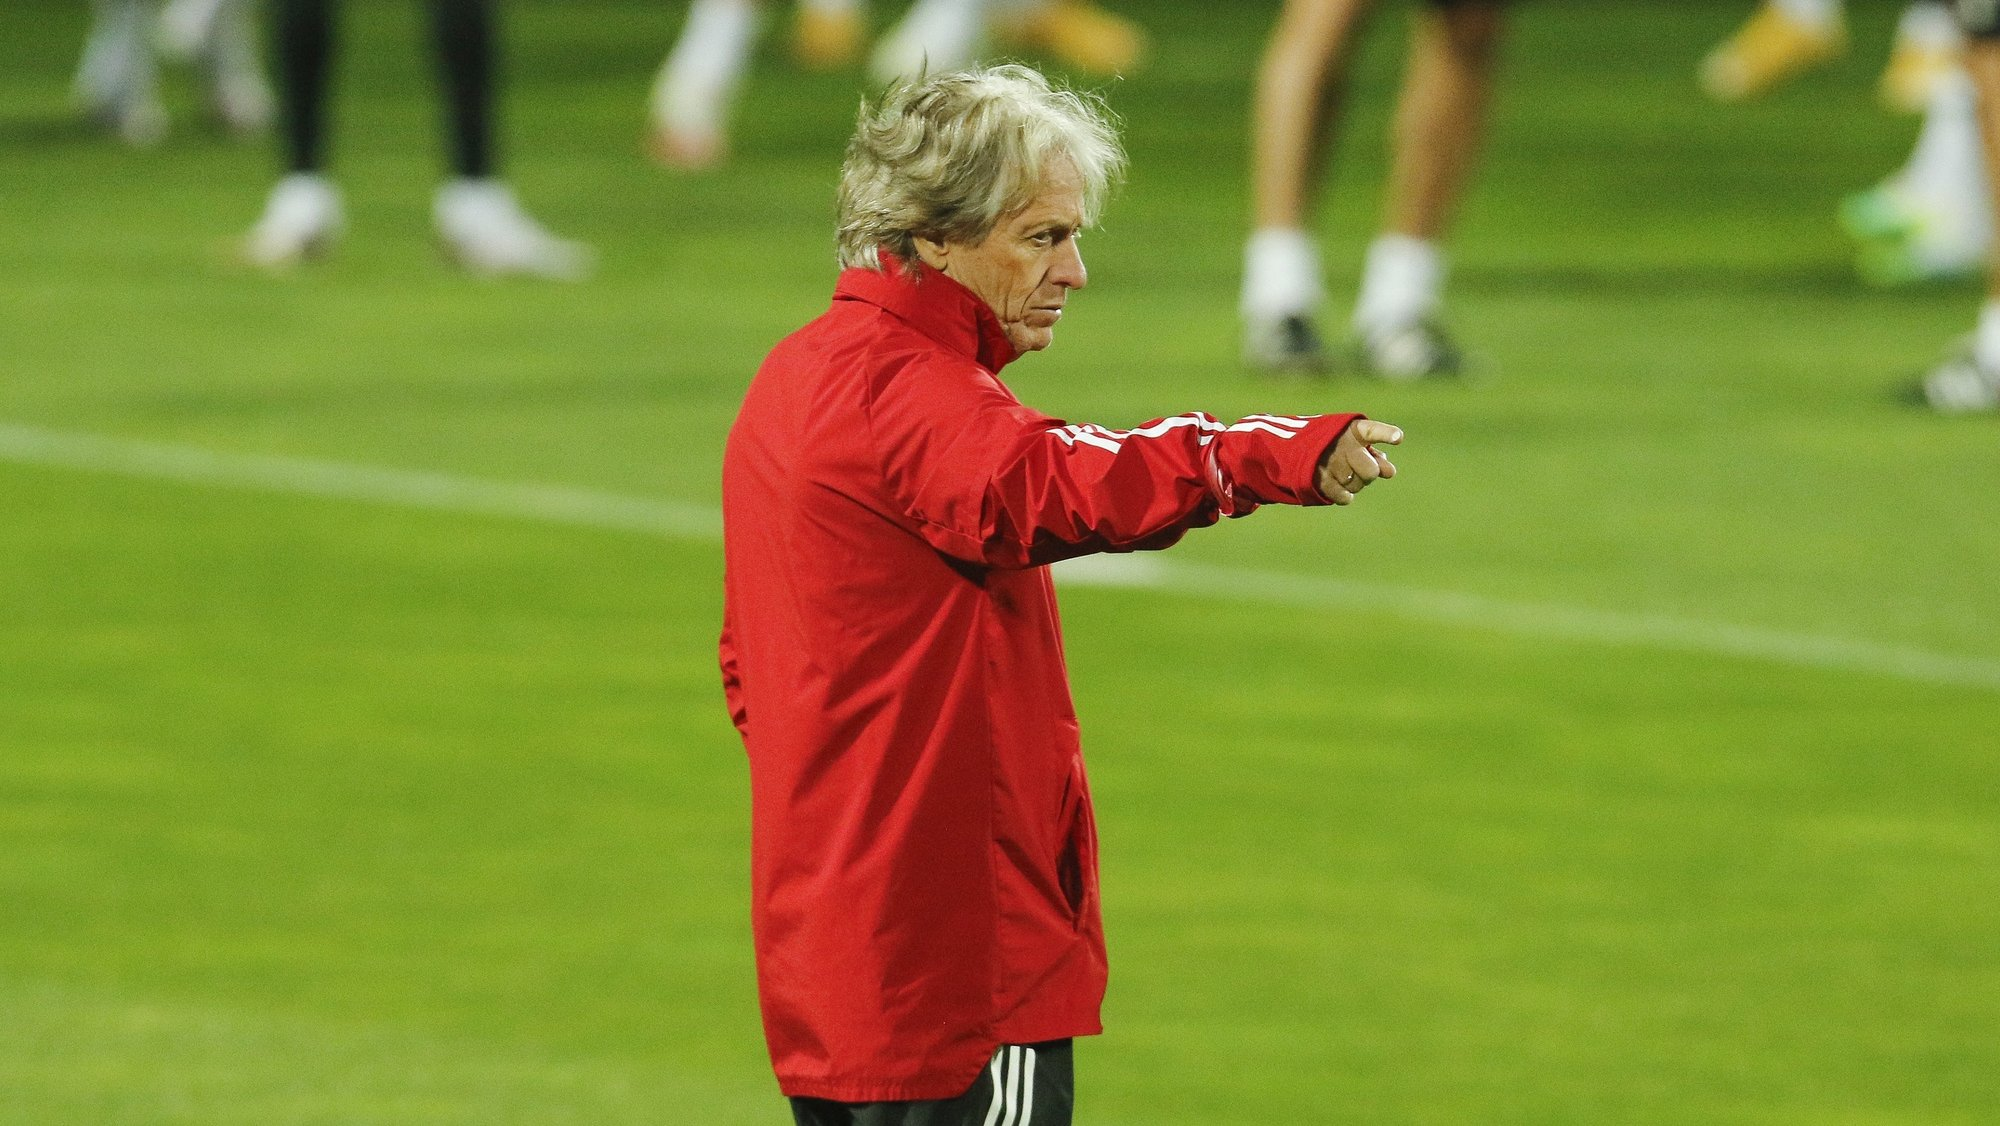 Benfica headcoach Jorge Jesus during a training session in Seixal, near Lisbon, Portugal, 4th October 2020. Benfica will face Rangers in their UEFA Matchday 3 of the Europa League Group D soccer match at Luz Stadium on 5th October. RUI MINDERICO/LUSA